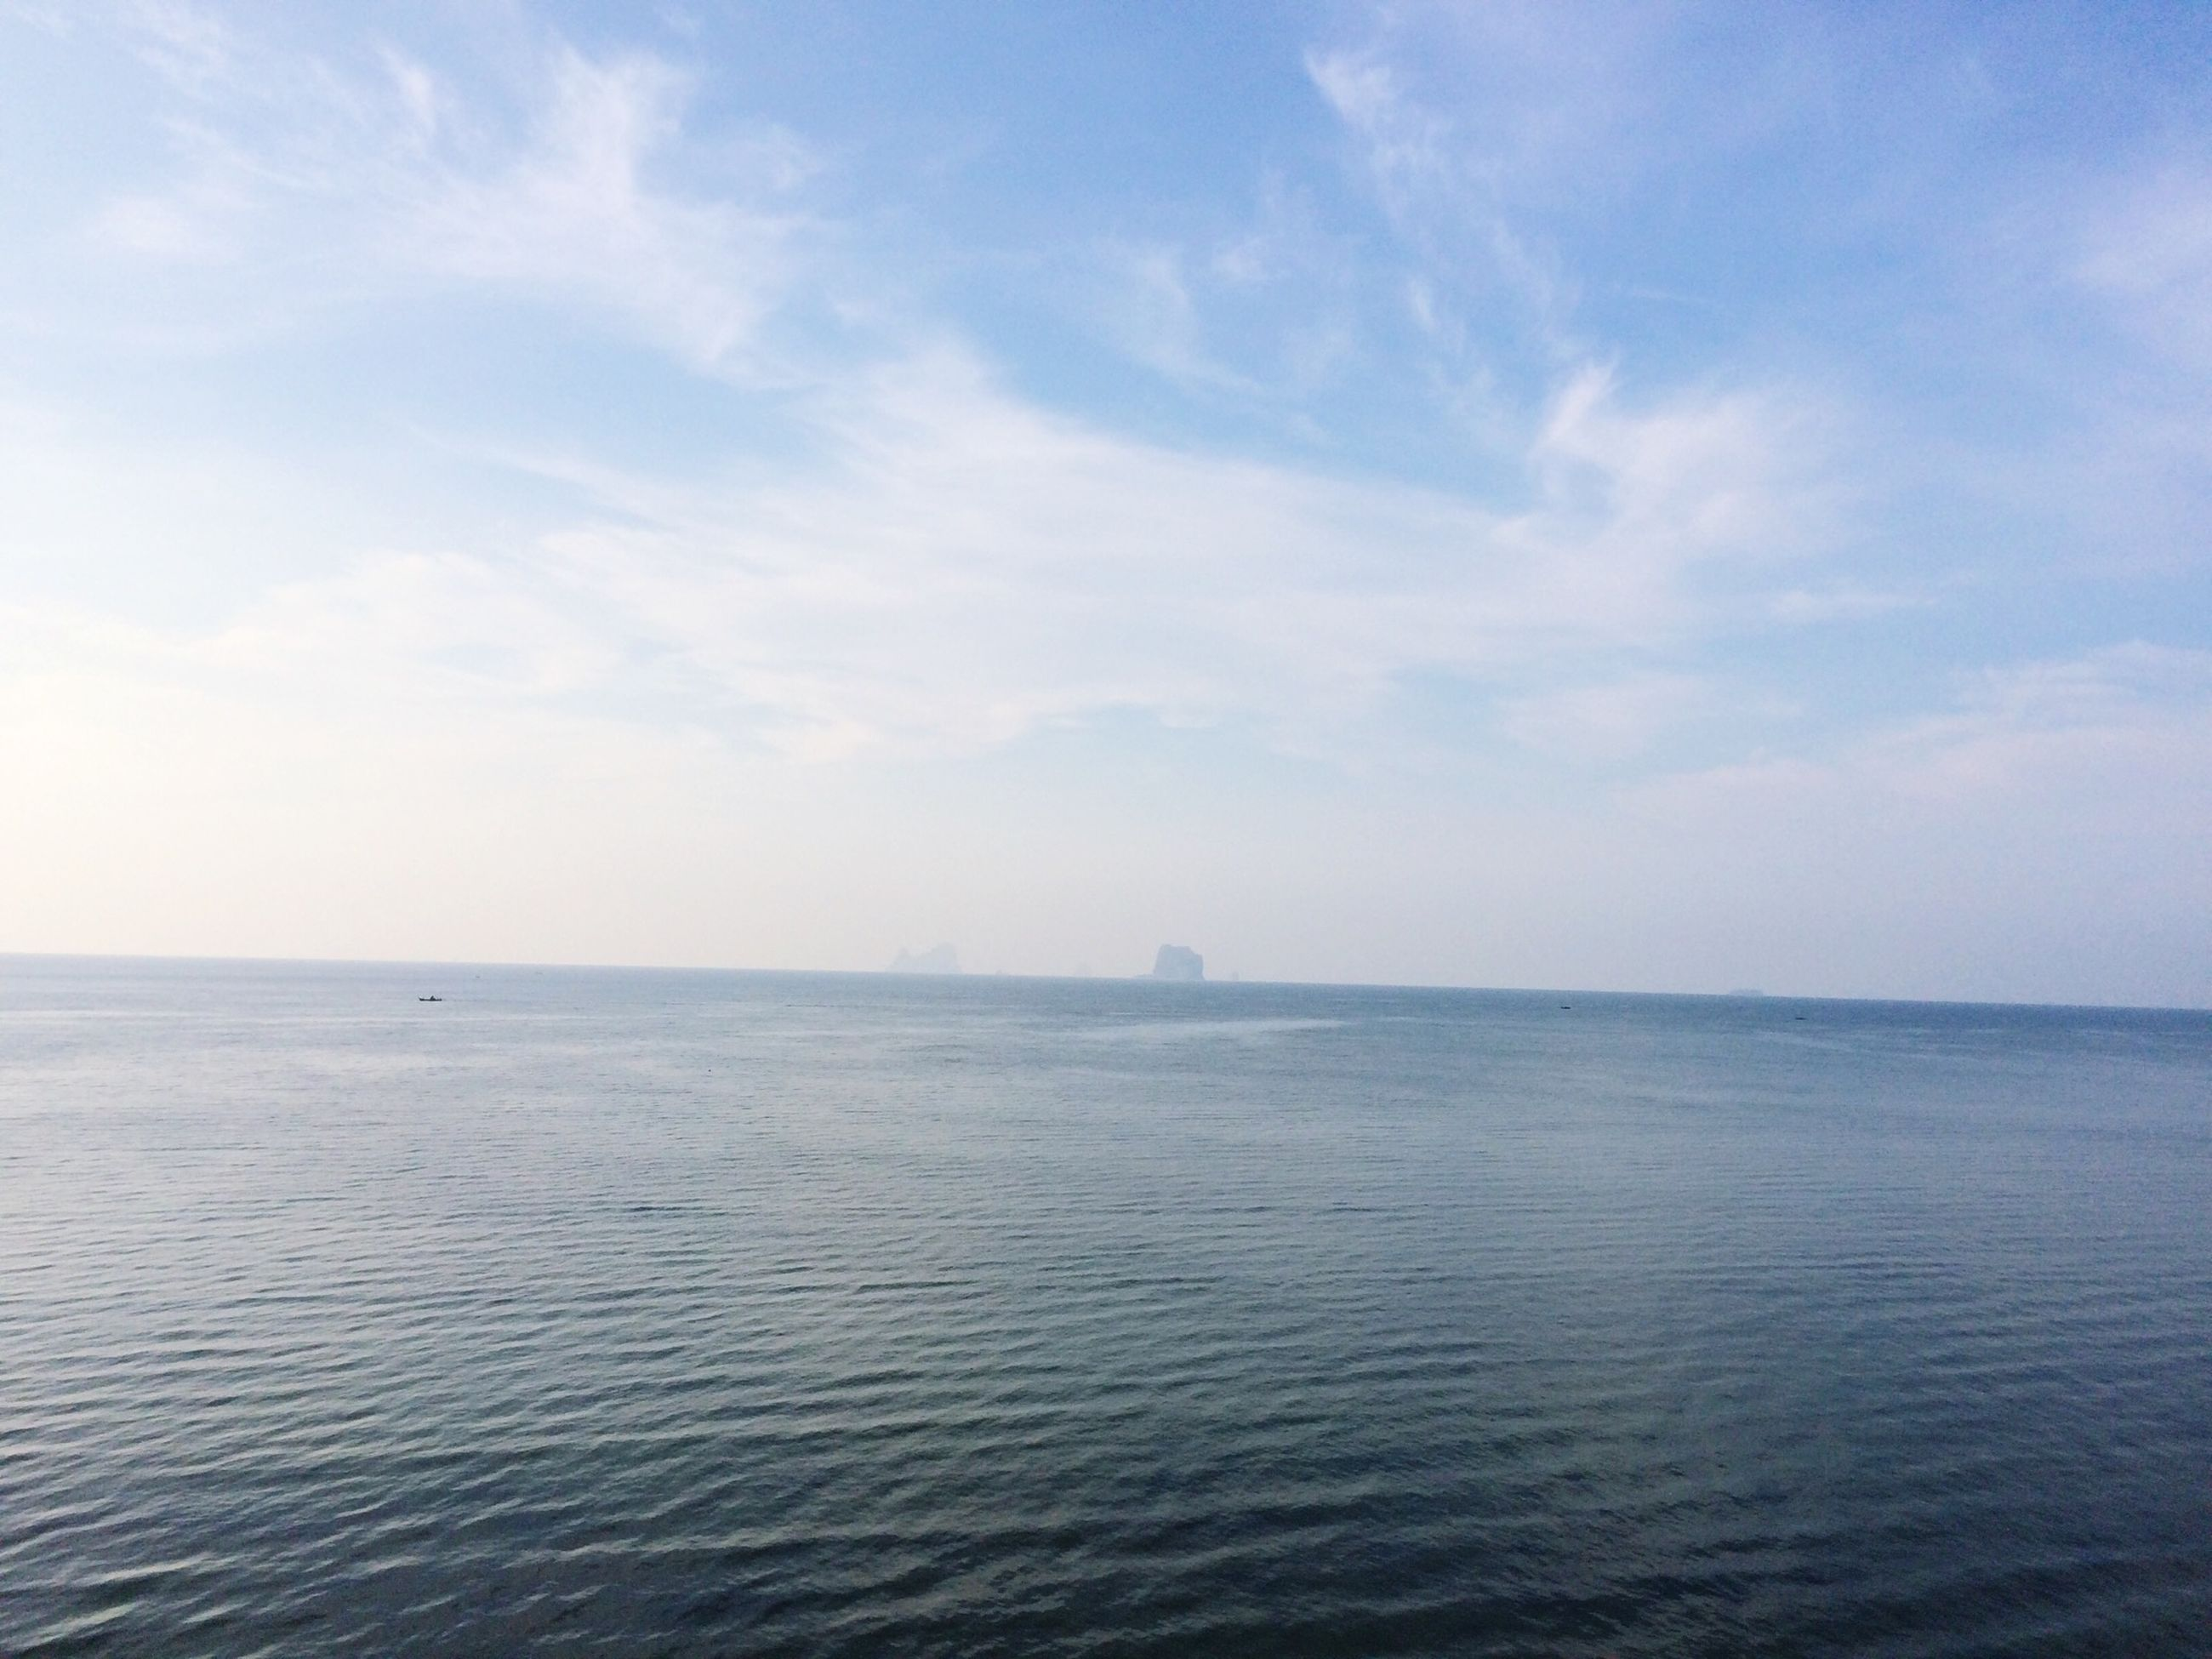 sea, water, waterfront, tranquil scene, horizon over water, sky, tranquility, scenics, beauty in nature, rippled, nature, seascape, cloud - sky, idyllic, blue, cloud, day, outdoors, no people, calm